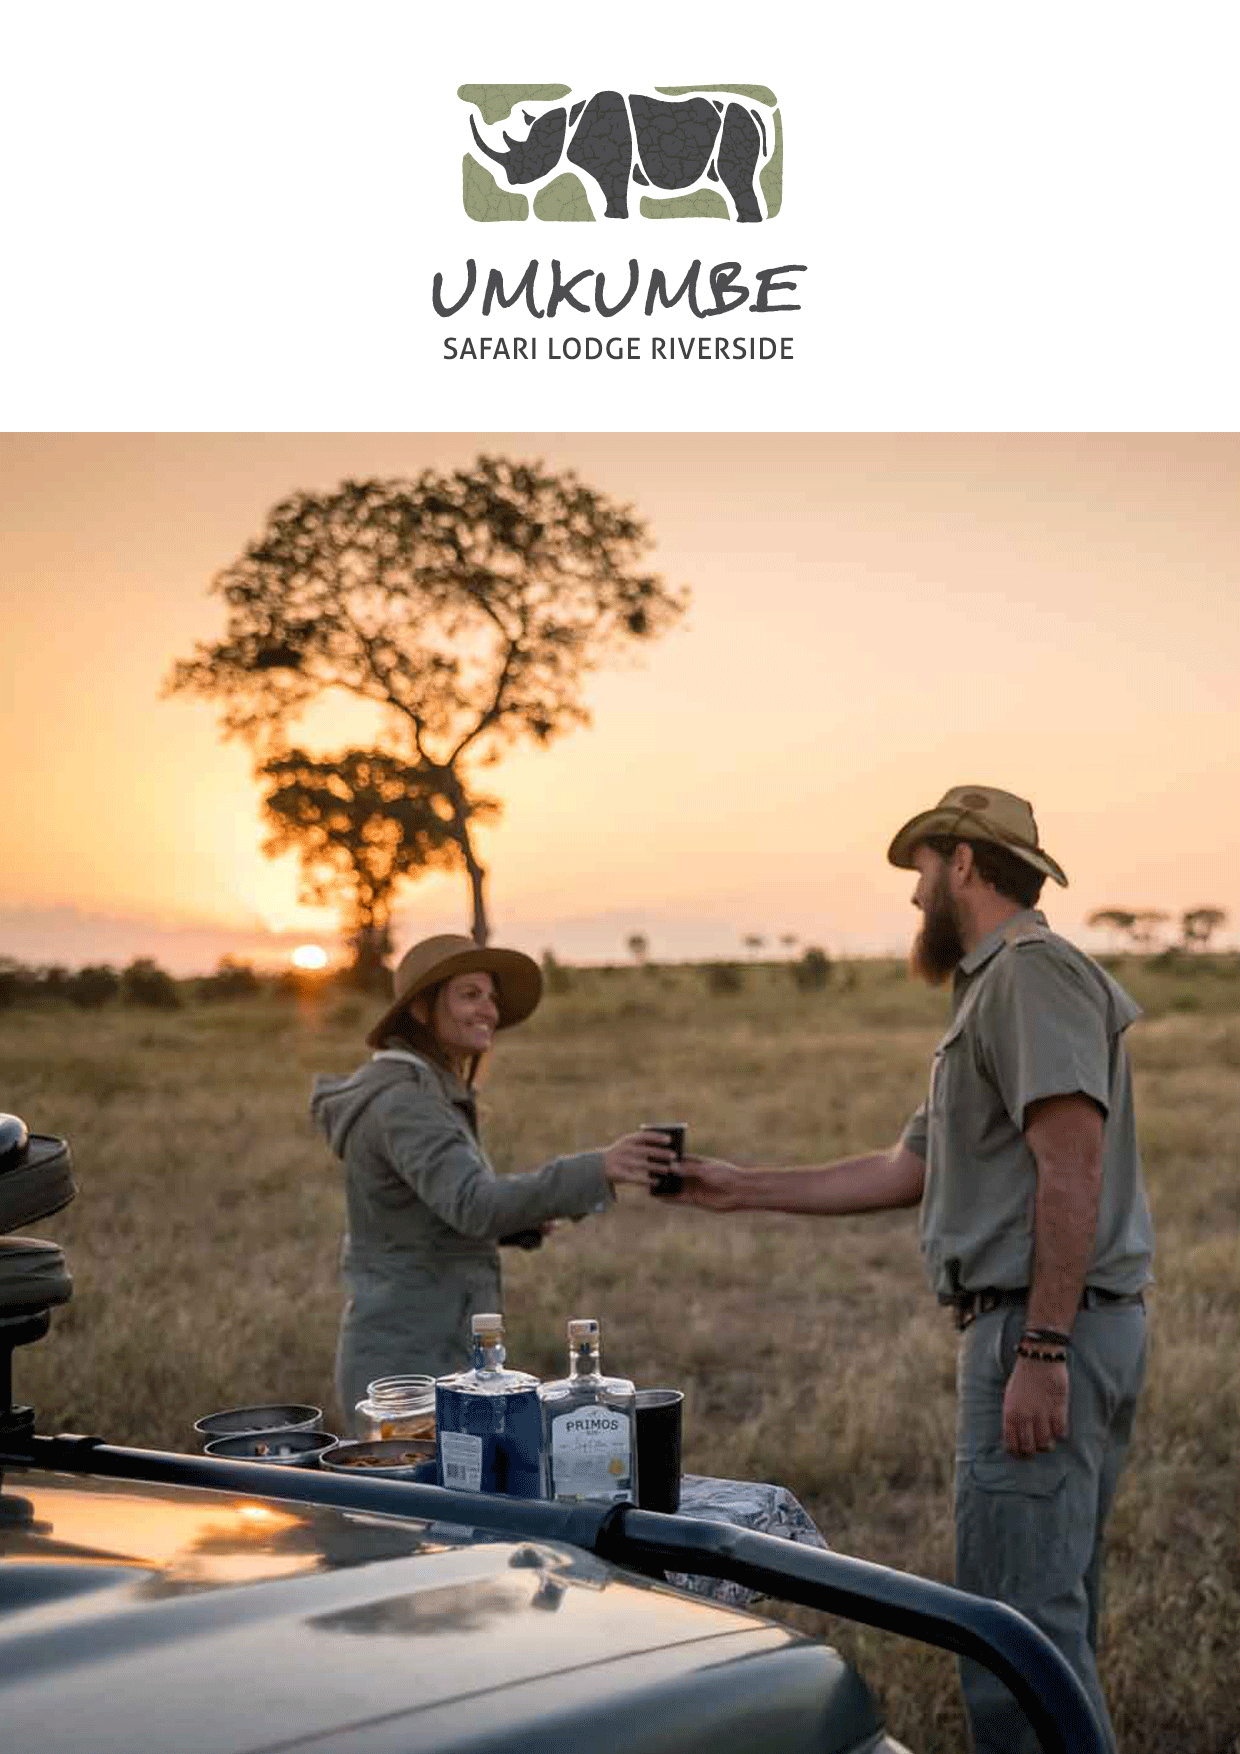 Umkumbe Safari Lodge Wetu Online Brochure